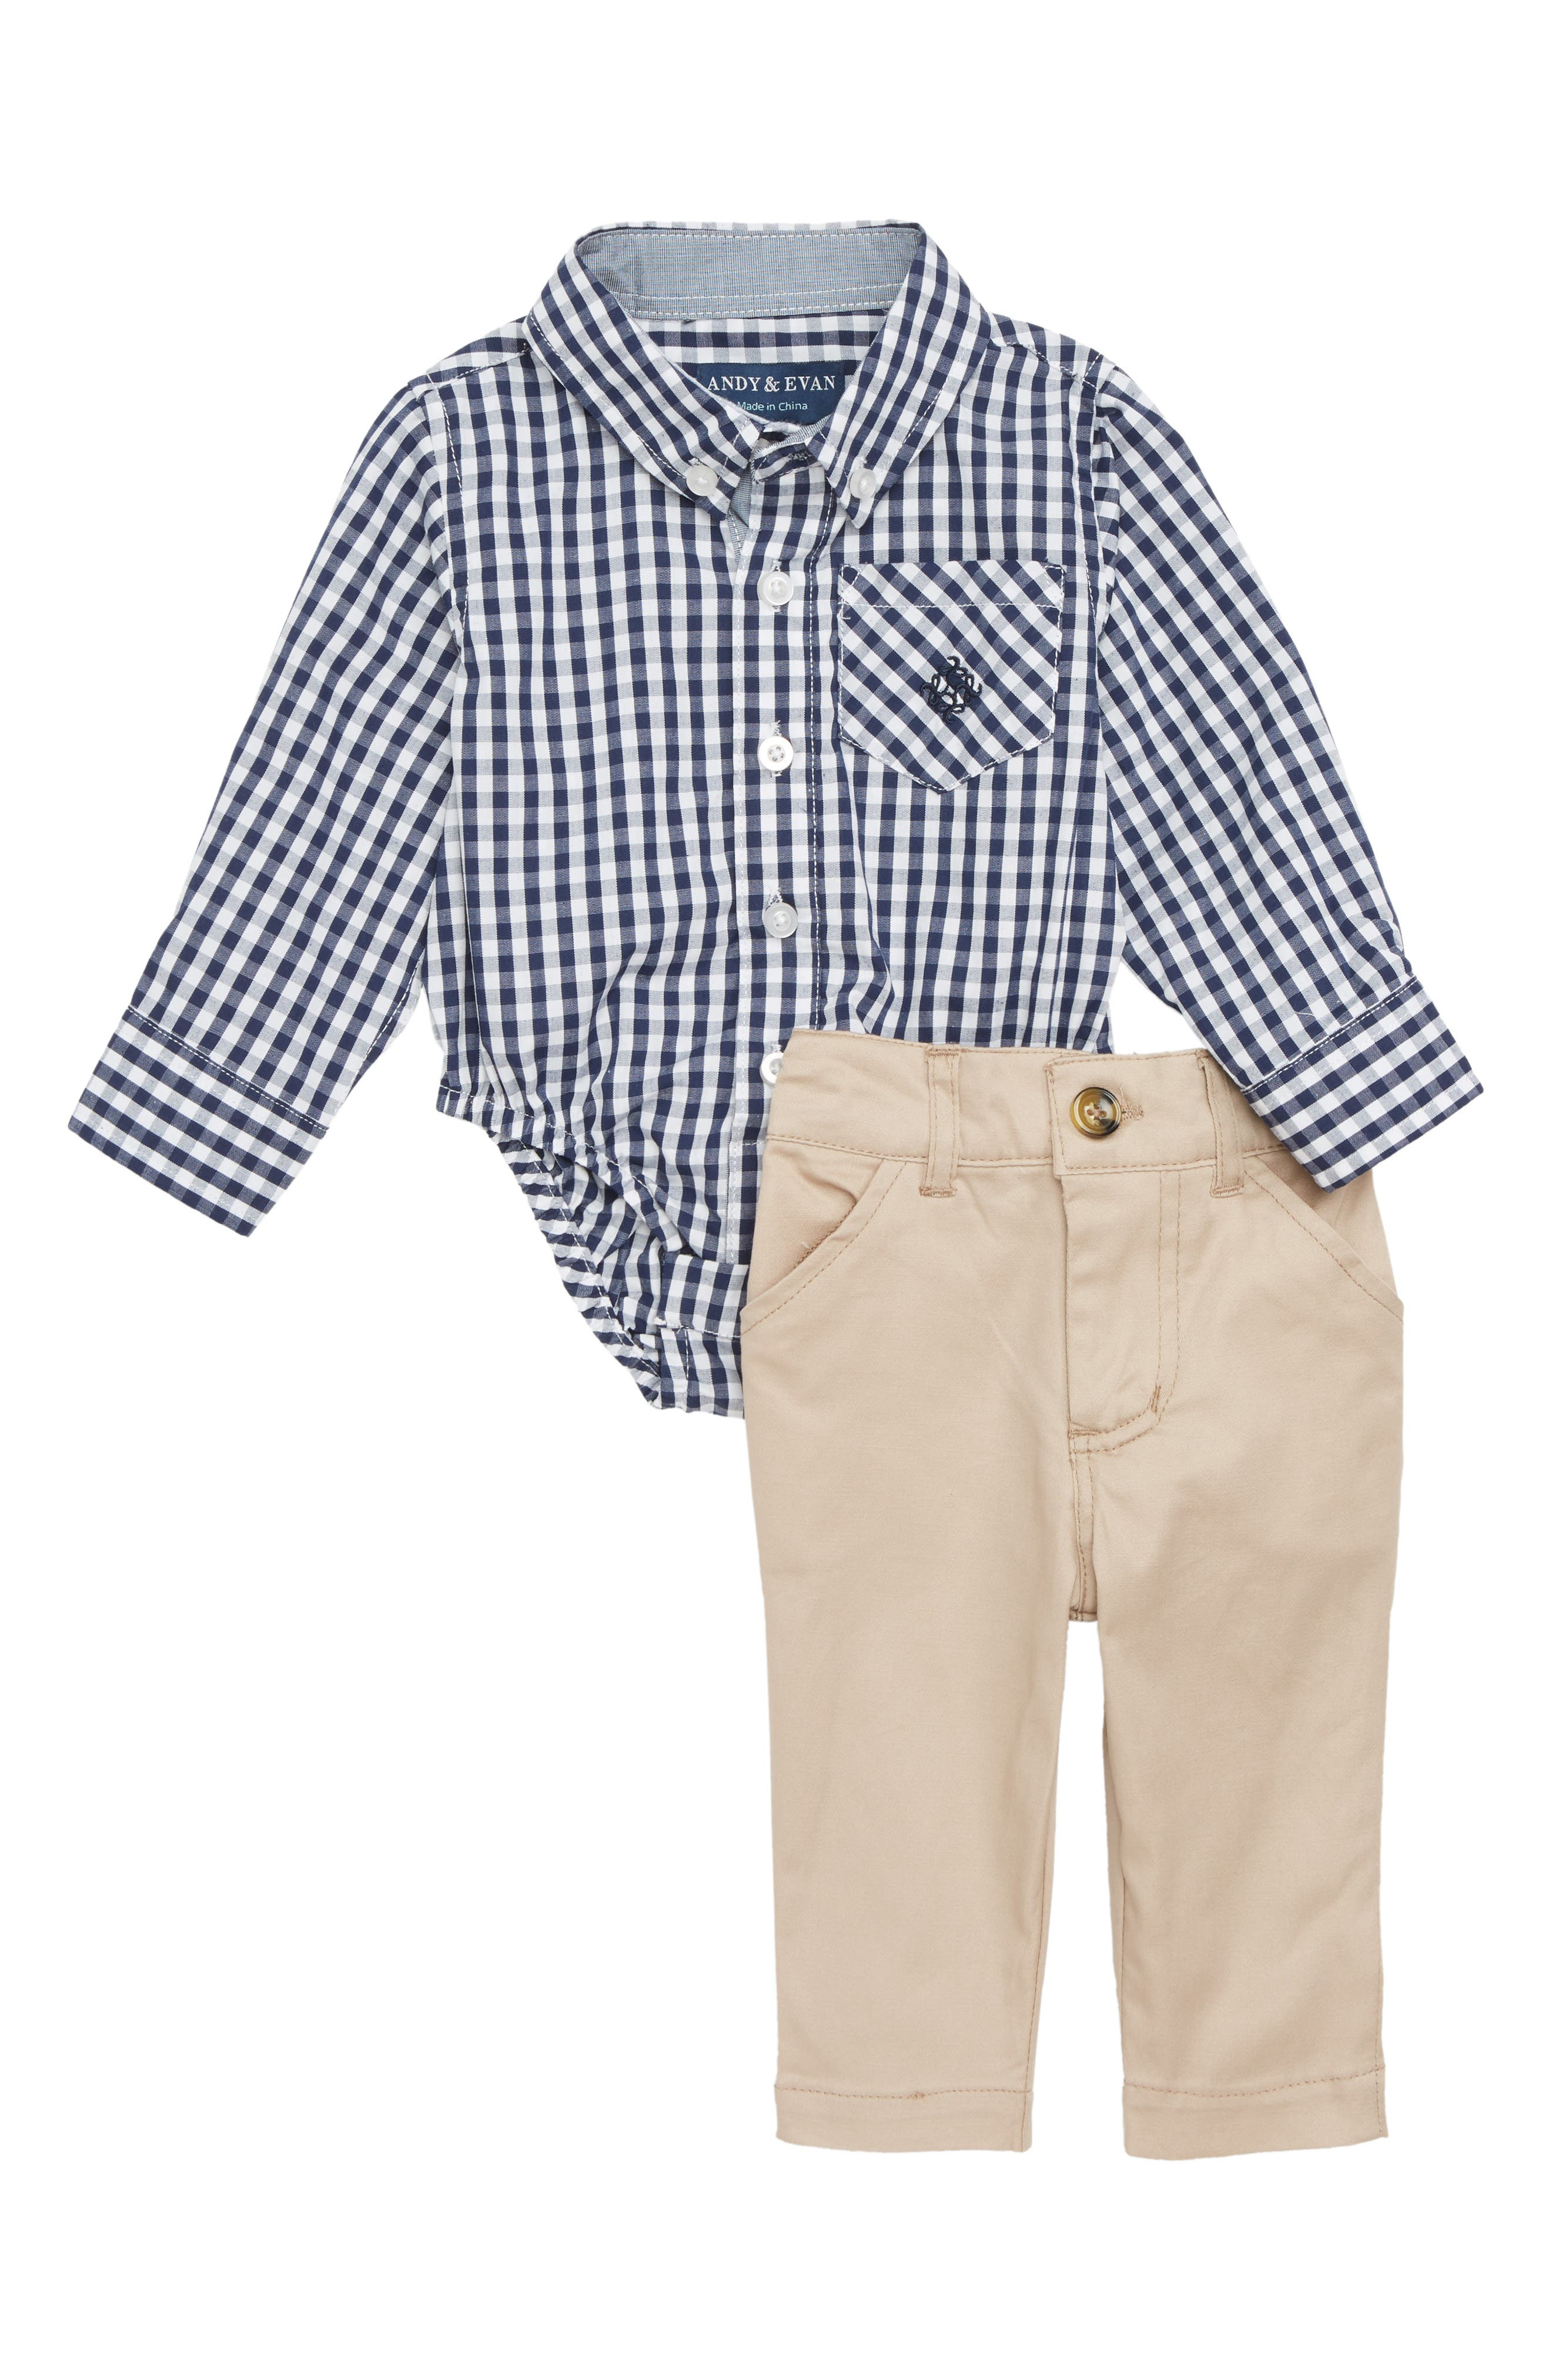 Main Image - Andy & Evan Shirtzie Gingham Check Bodysuit & Pants Set (Baby Boys)